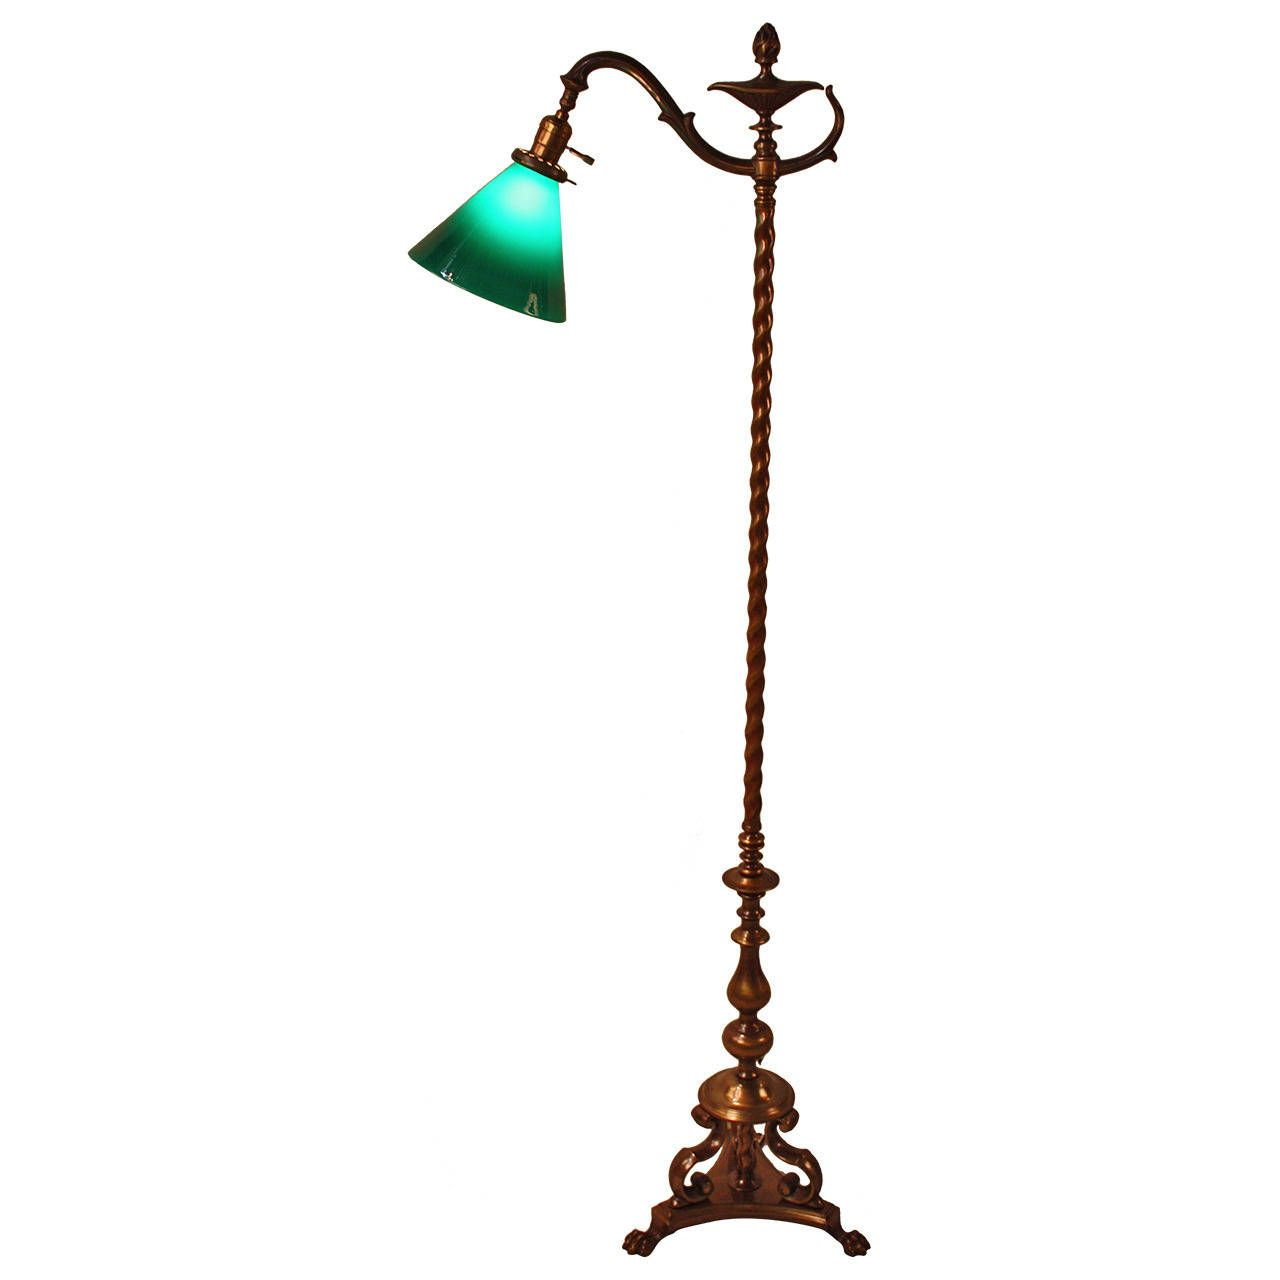 1920s Floor Lamp Google Search Lampe Dekorative Lampen Lampenschirm